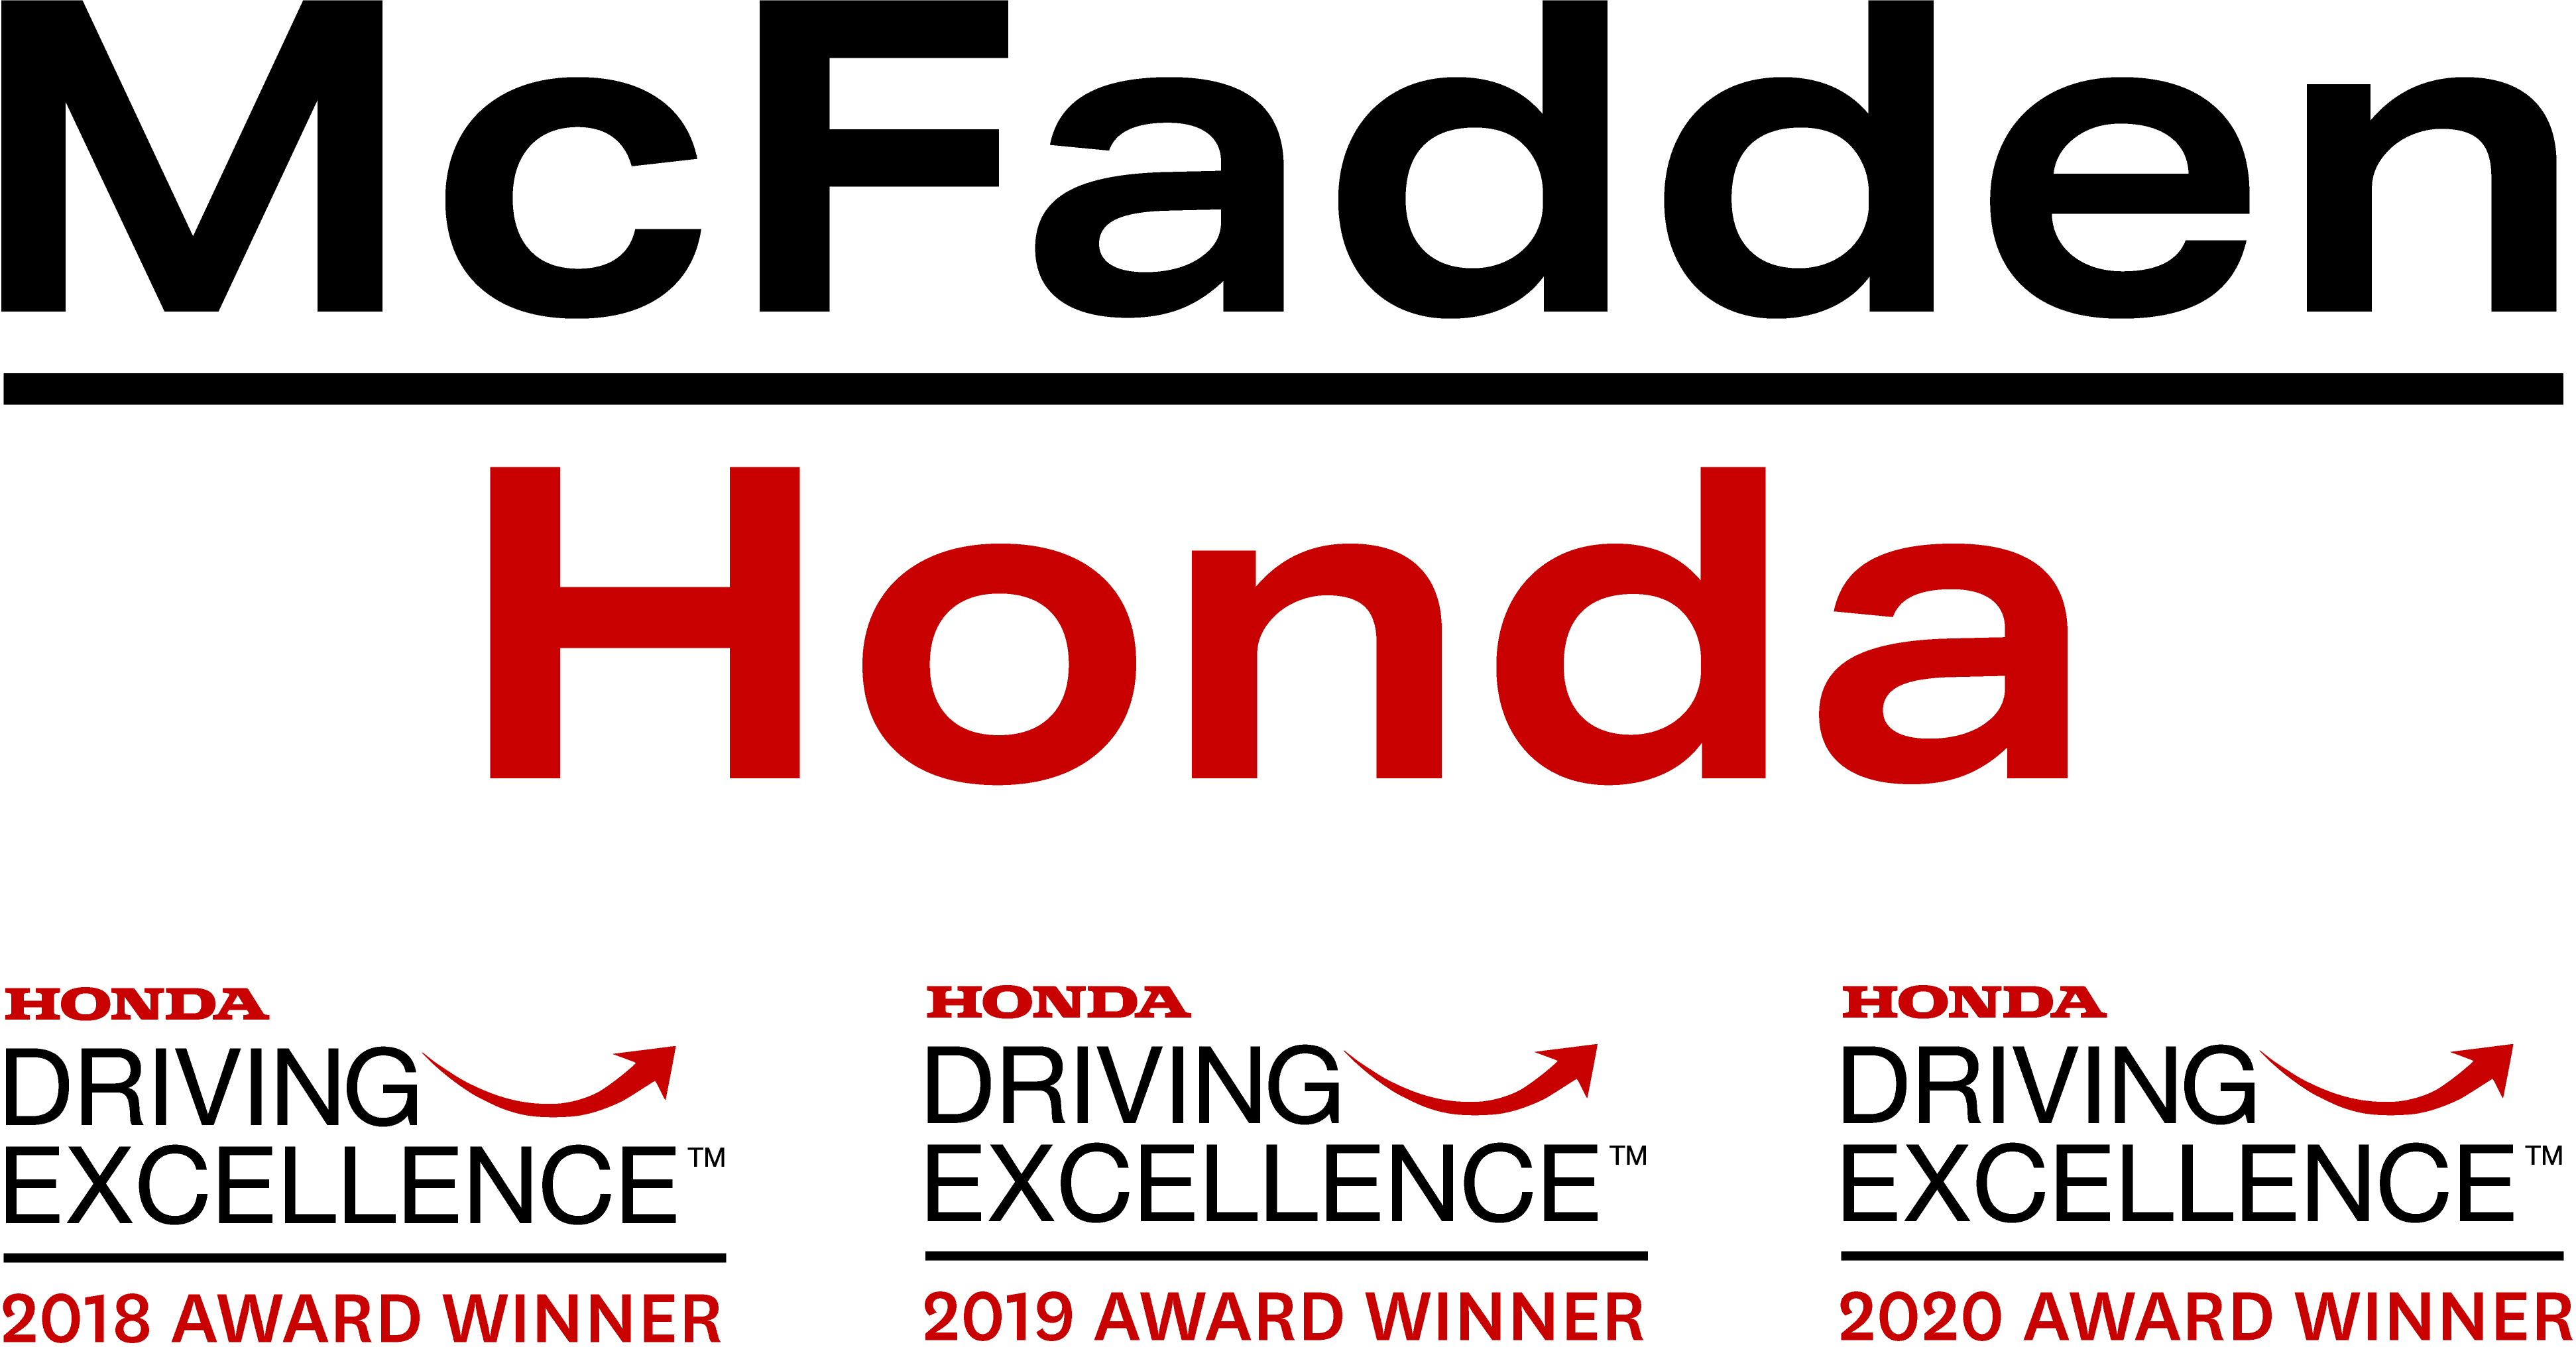 McFadden Honda has won the Honda Driving Excellence Award 3 times as of 2020.